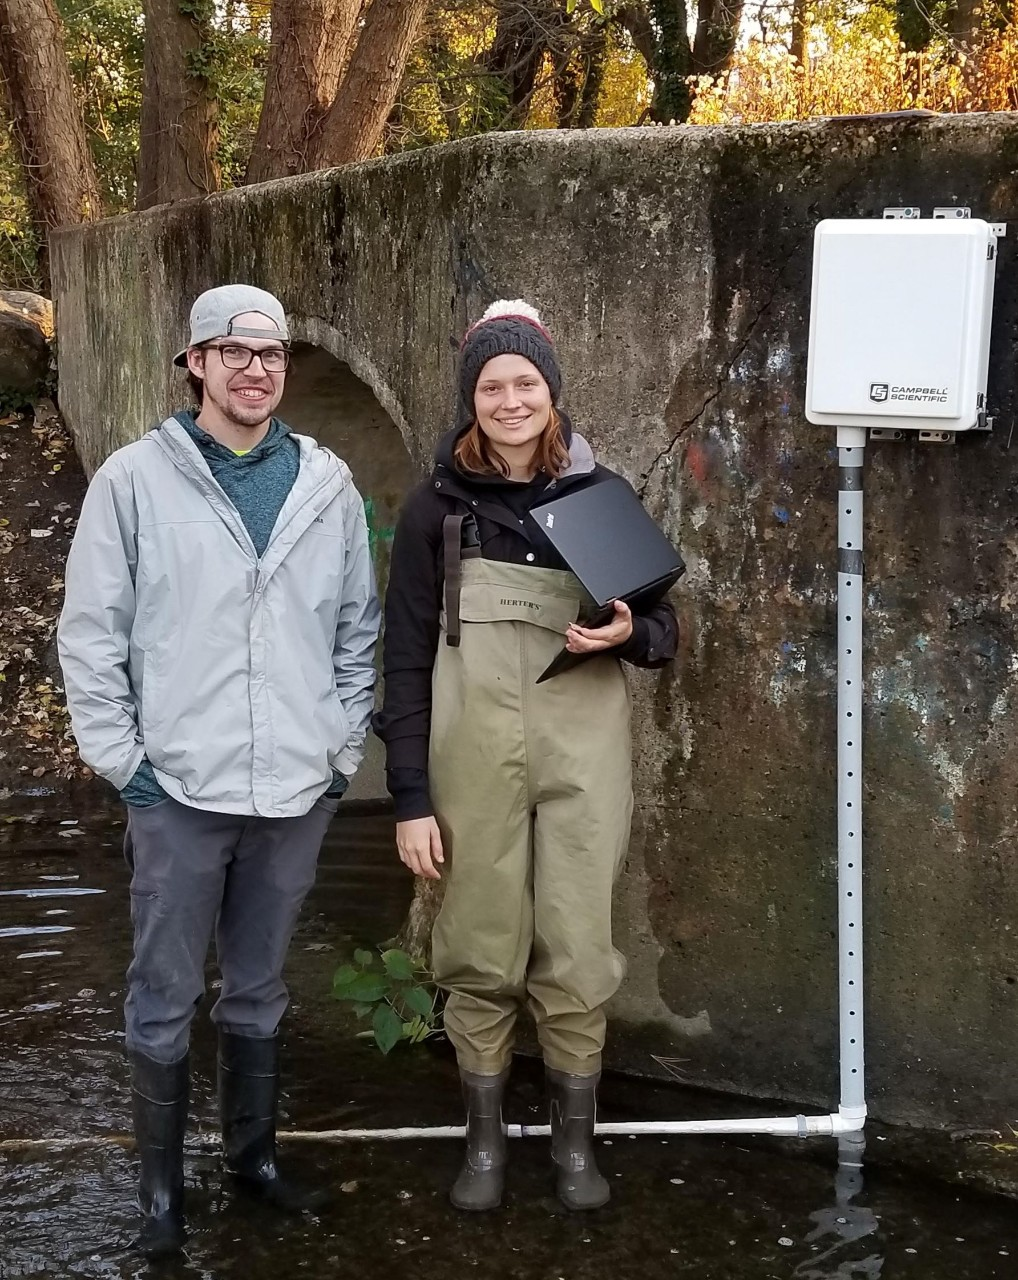 Graduate students Mike Burns and Rebecca Martin collecting data at Naylor's Run.